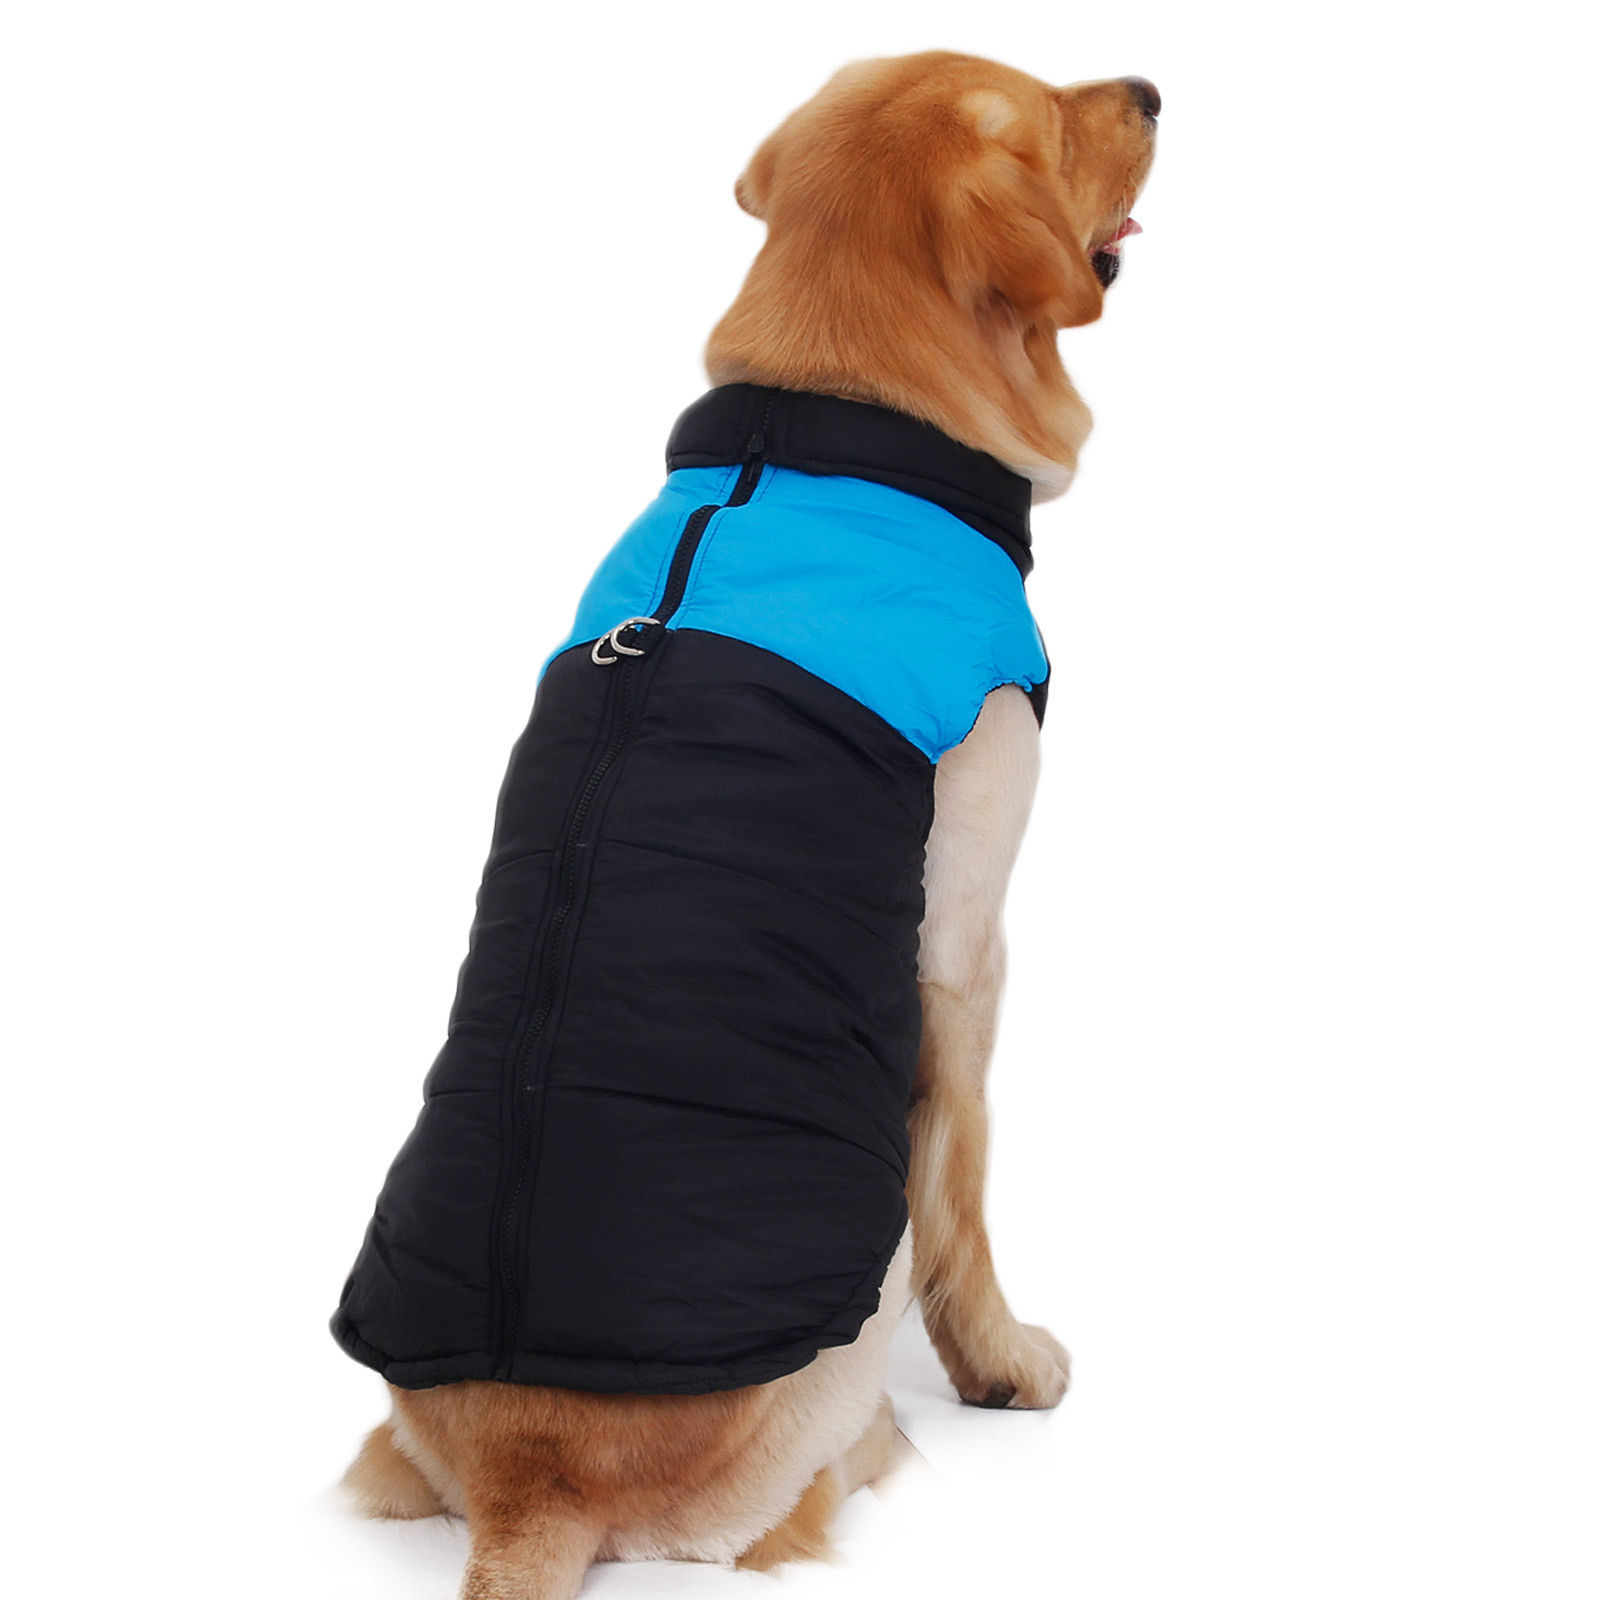 Winter Warm Pet Dog Vest Jacket Coat Popular Small Medium ...